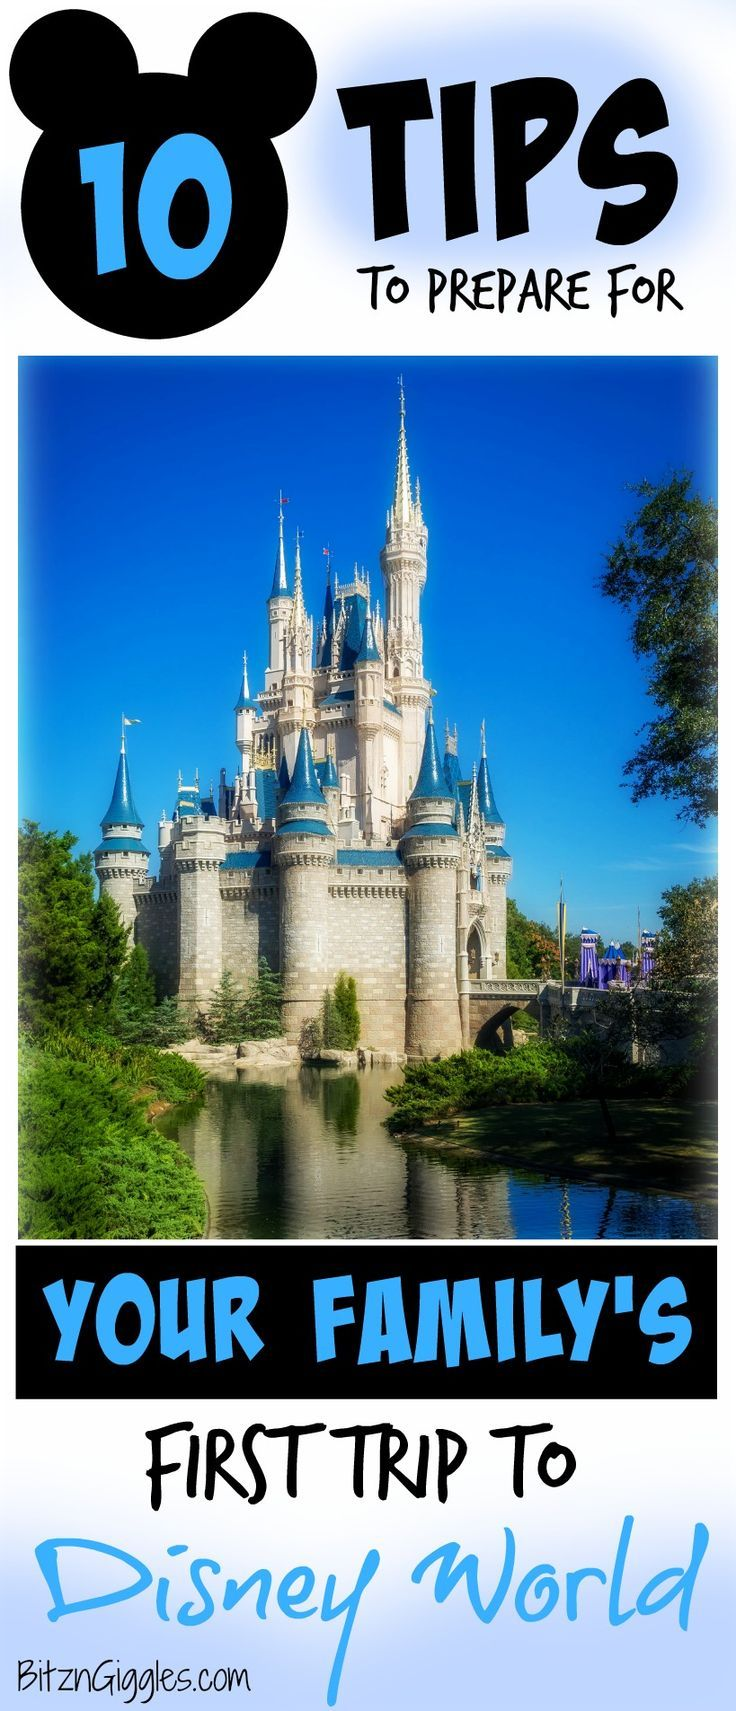 10 Tips to Prepare for Your Family's First Trip to Disney World - Psst. . .I love #5! Check out 10 ways to build some magic into your planning for a trip your family will never forget!